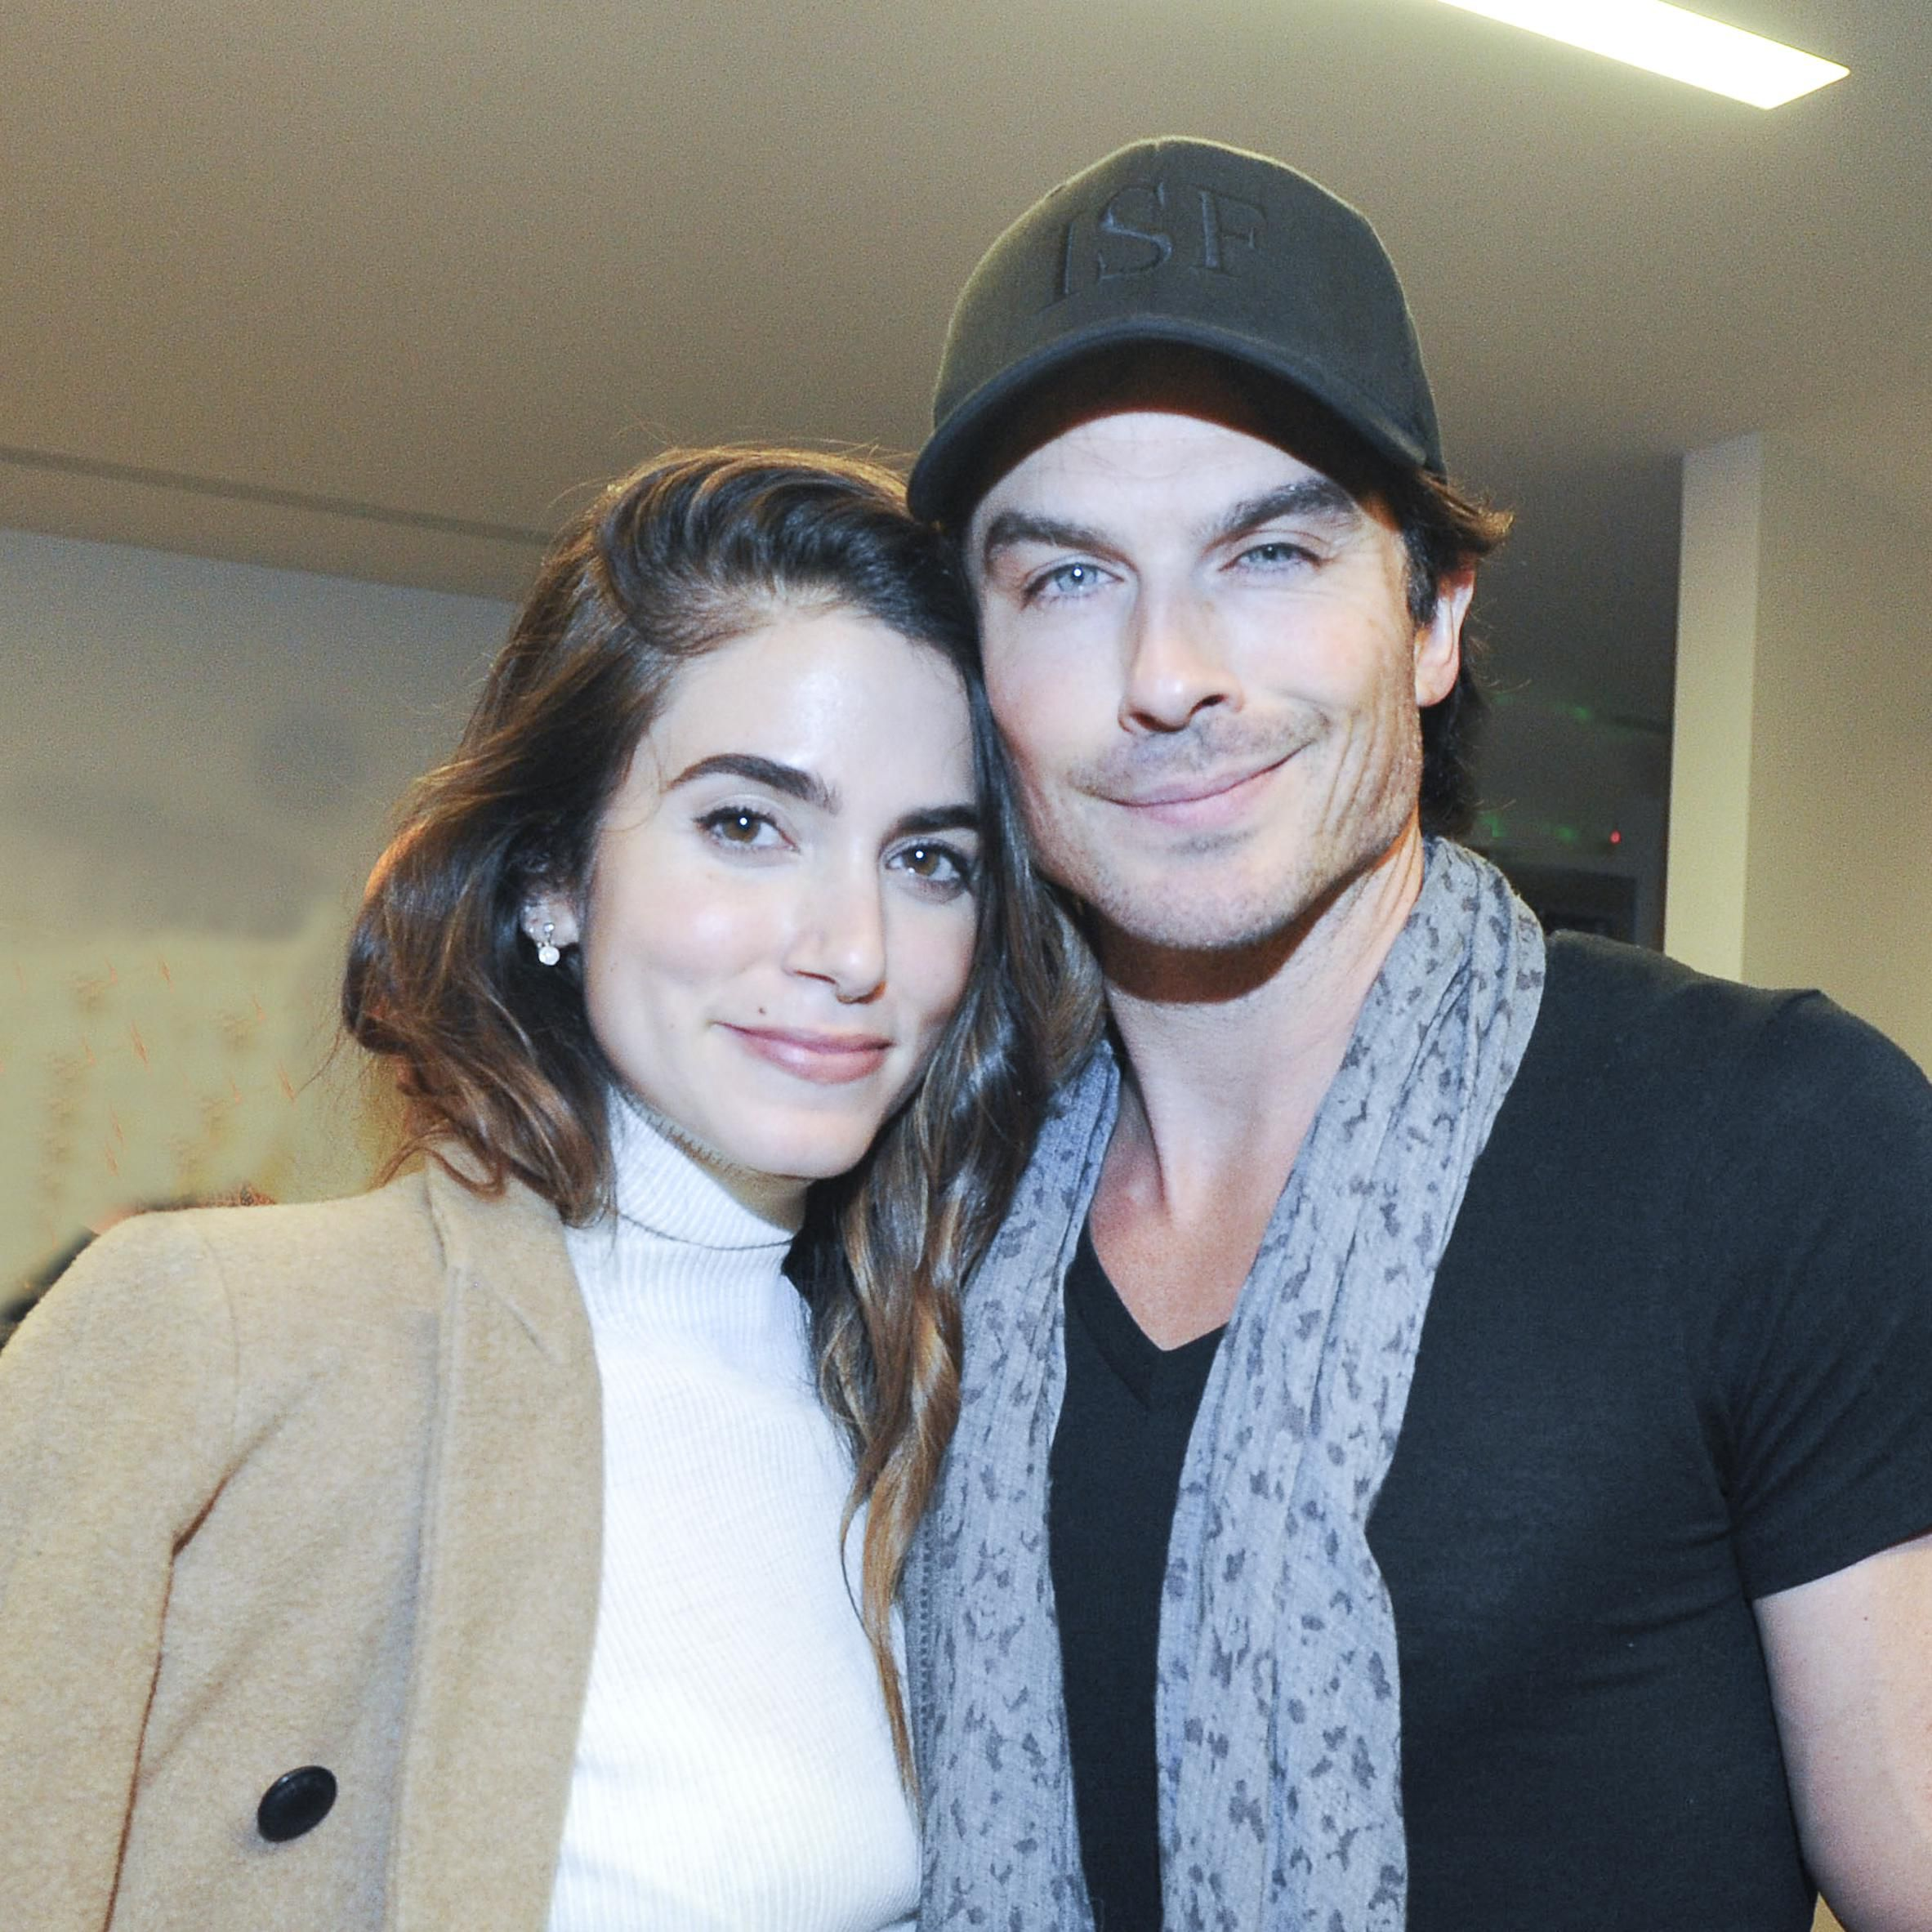 Nikki Reed And Ian Somerhalder Share Sweet Instagram Messages In Honor Of Their Fourth Wedding Anniversary